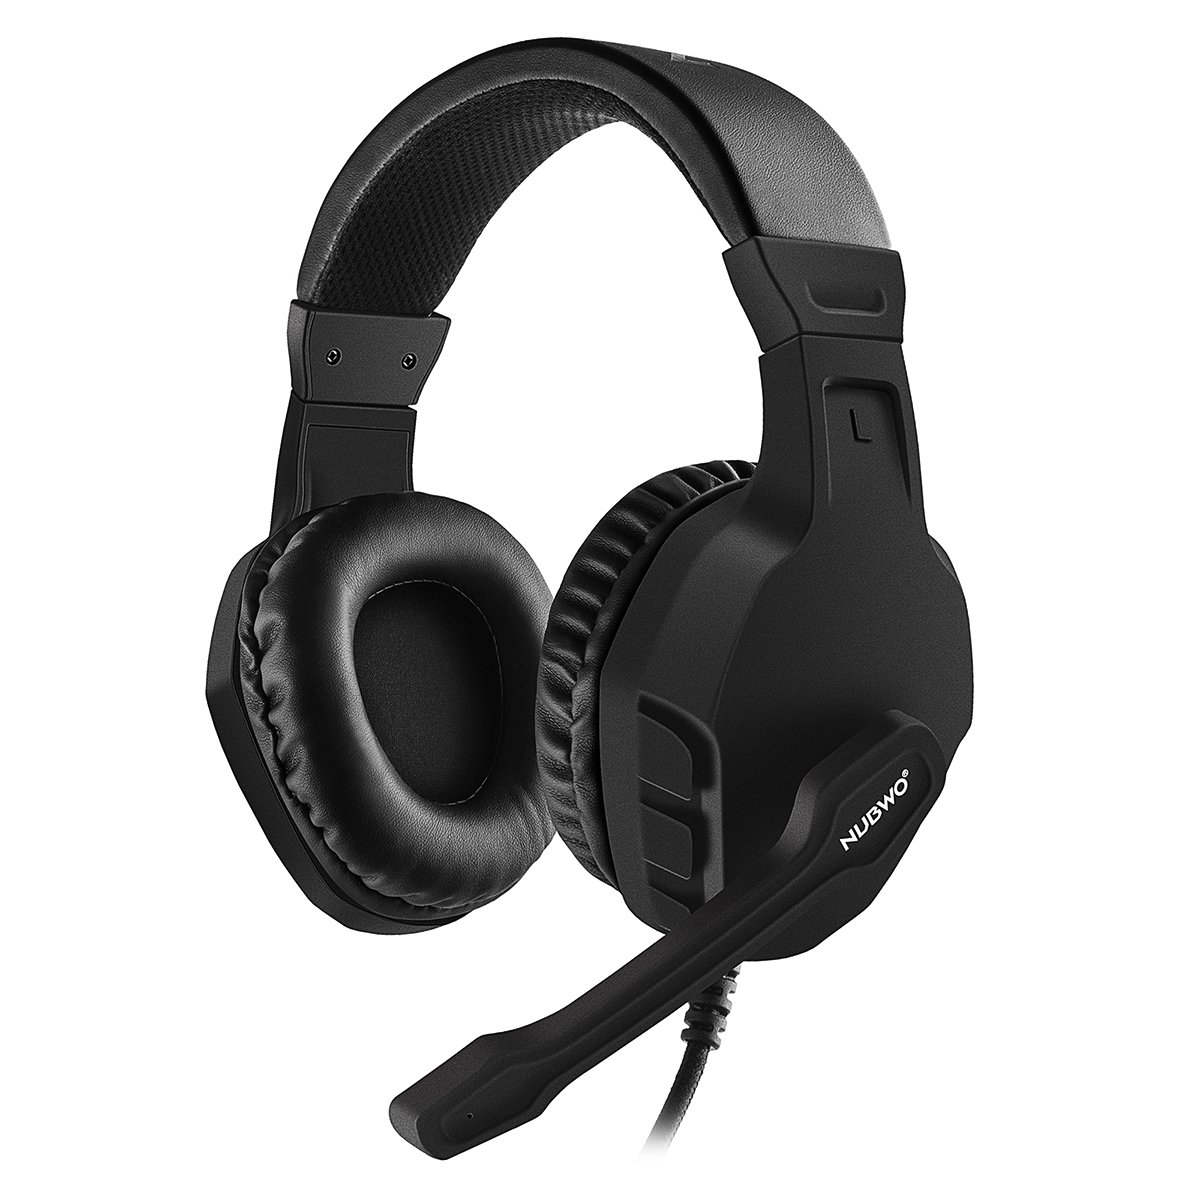 NUBWO U3 3.5mm Gaming Headset for PC, PS4, Laptop, Xbox One, Mac, iPad, Nintendo Switch Games, Computer Game Gamer Over Ear Flexible Microphone Volume Control with Mic - Black by NUBWO